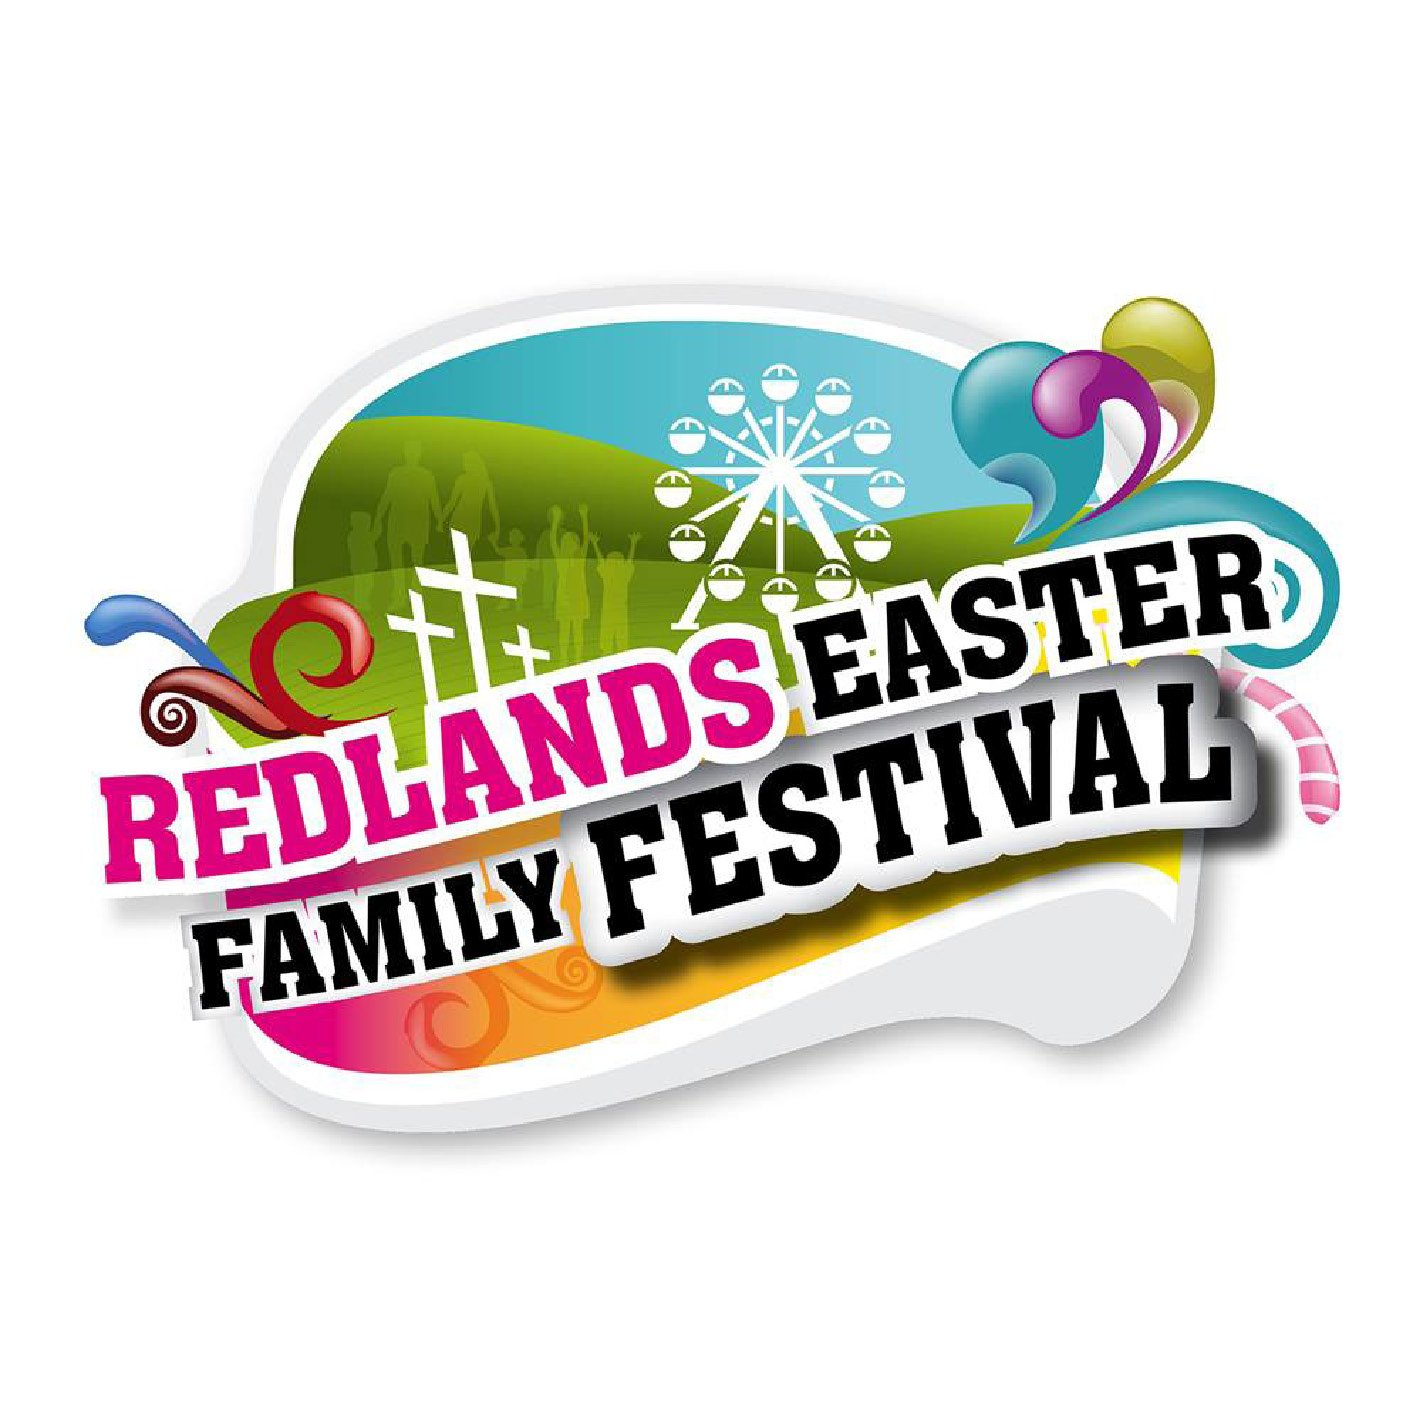 Redlands Easter Festival Logo Design